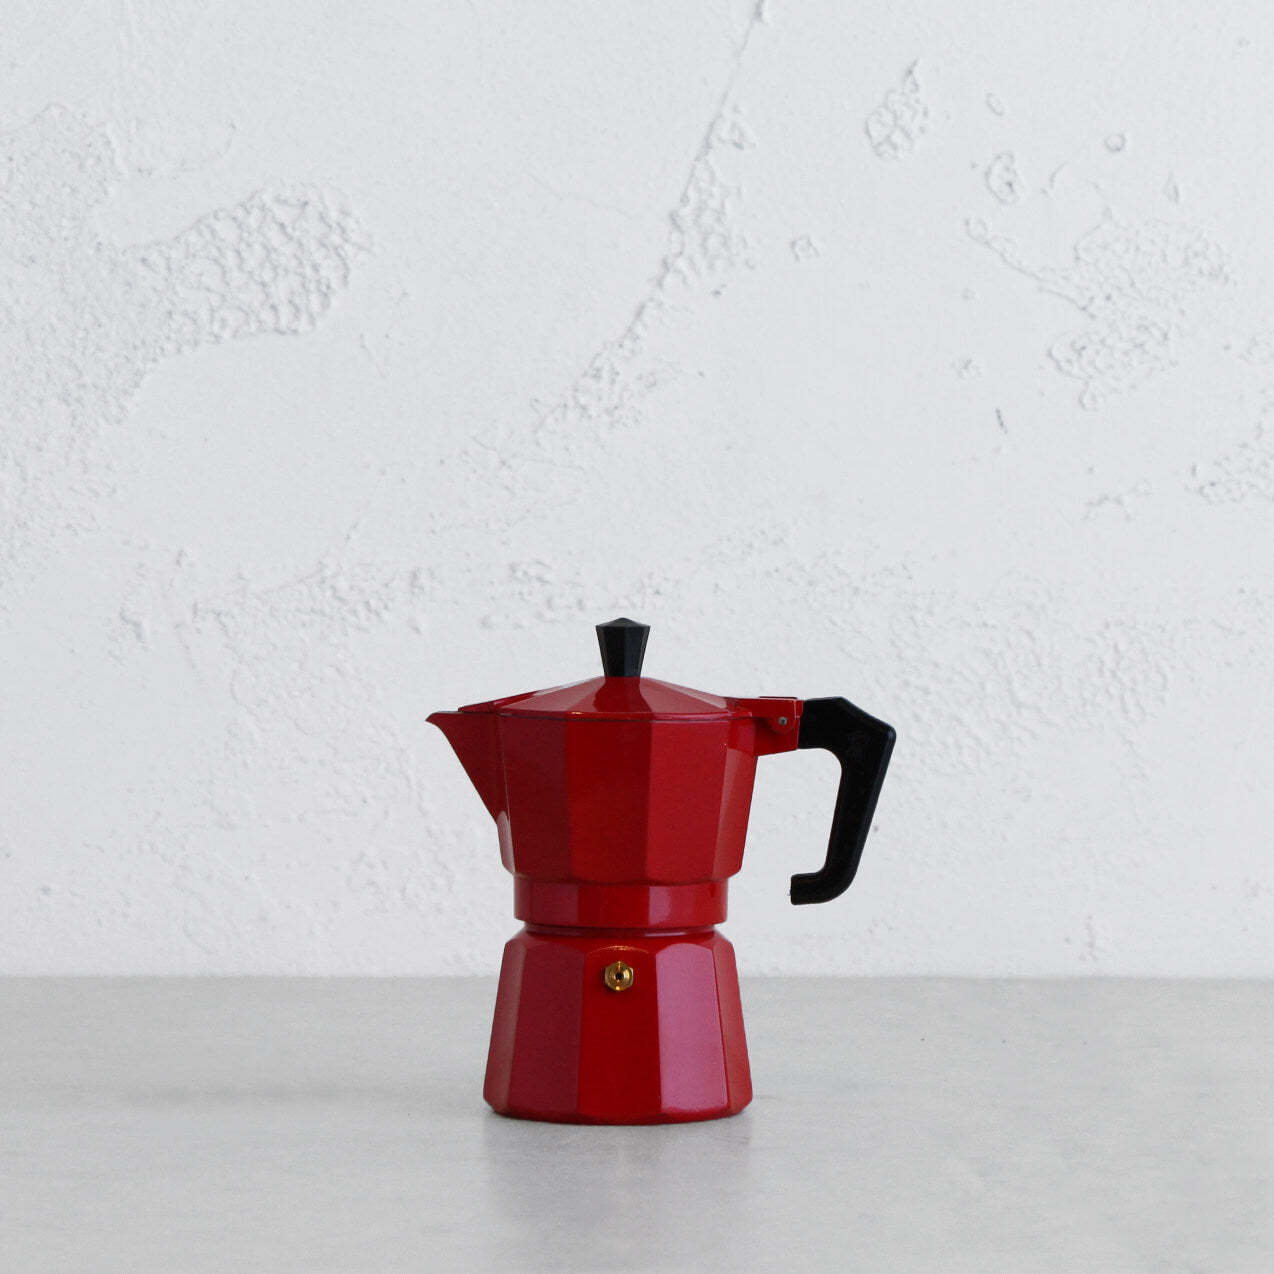 PEZZETTI ITALEXPRESS COFFEE MAKER  |  3 CUP  |  RED